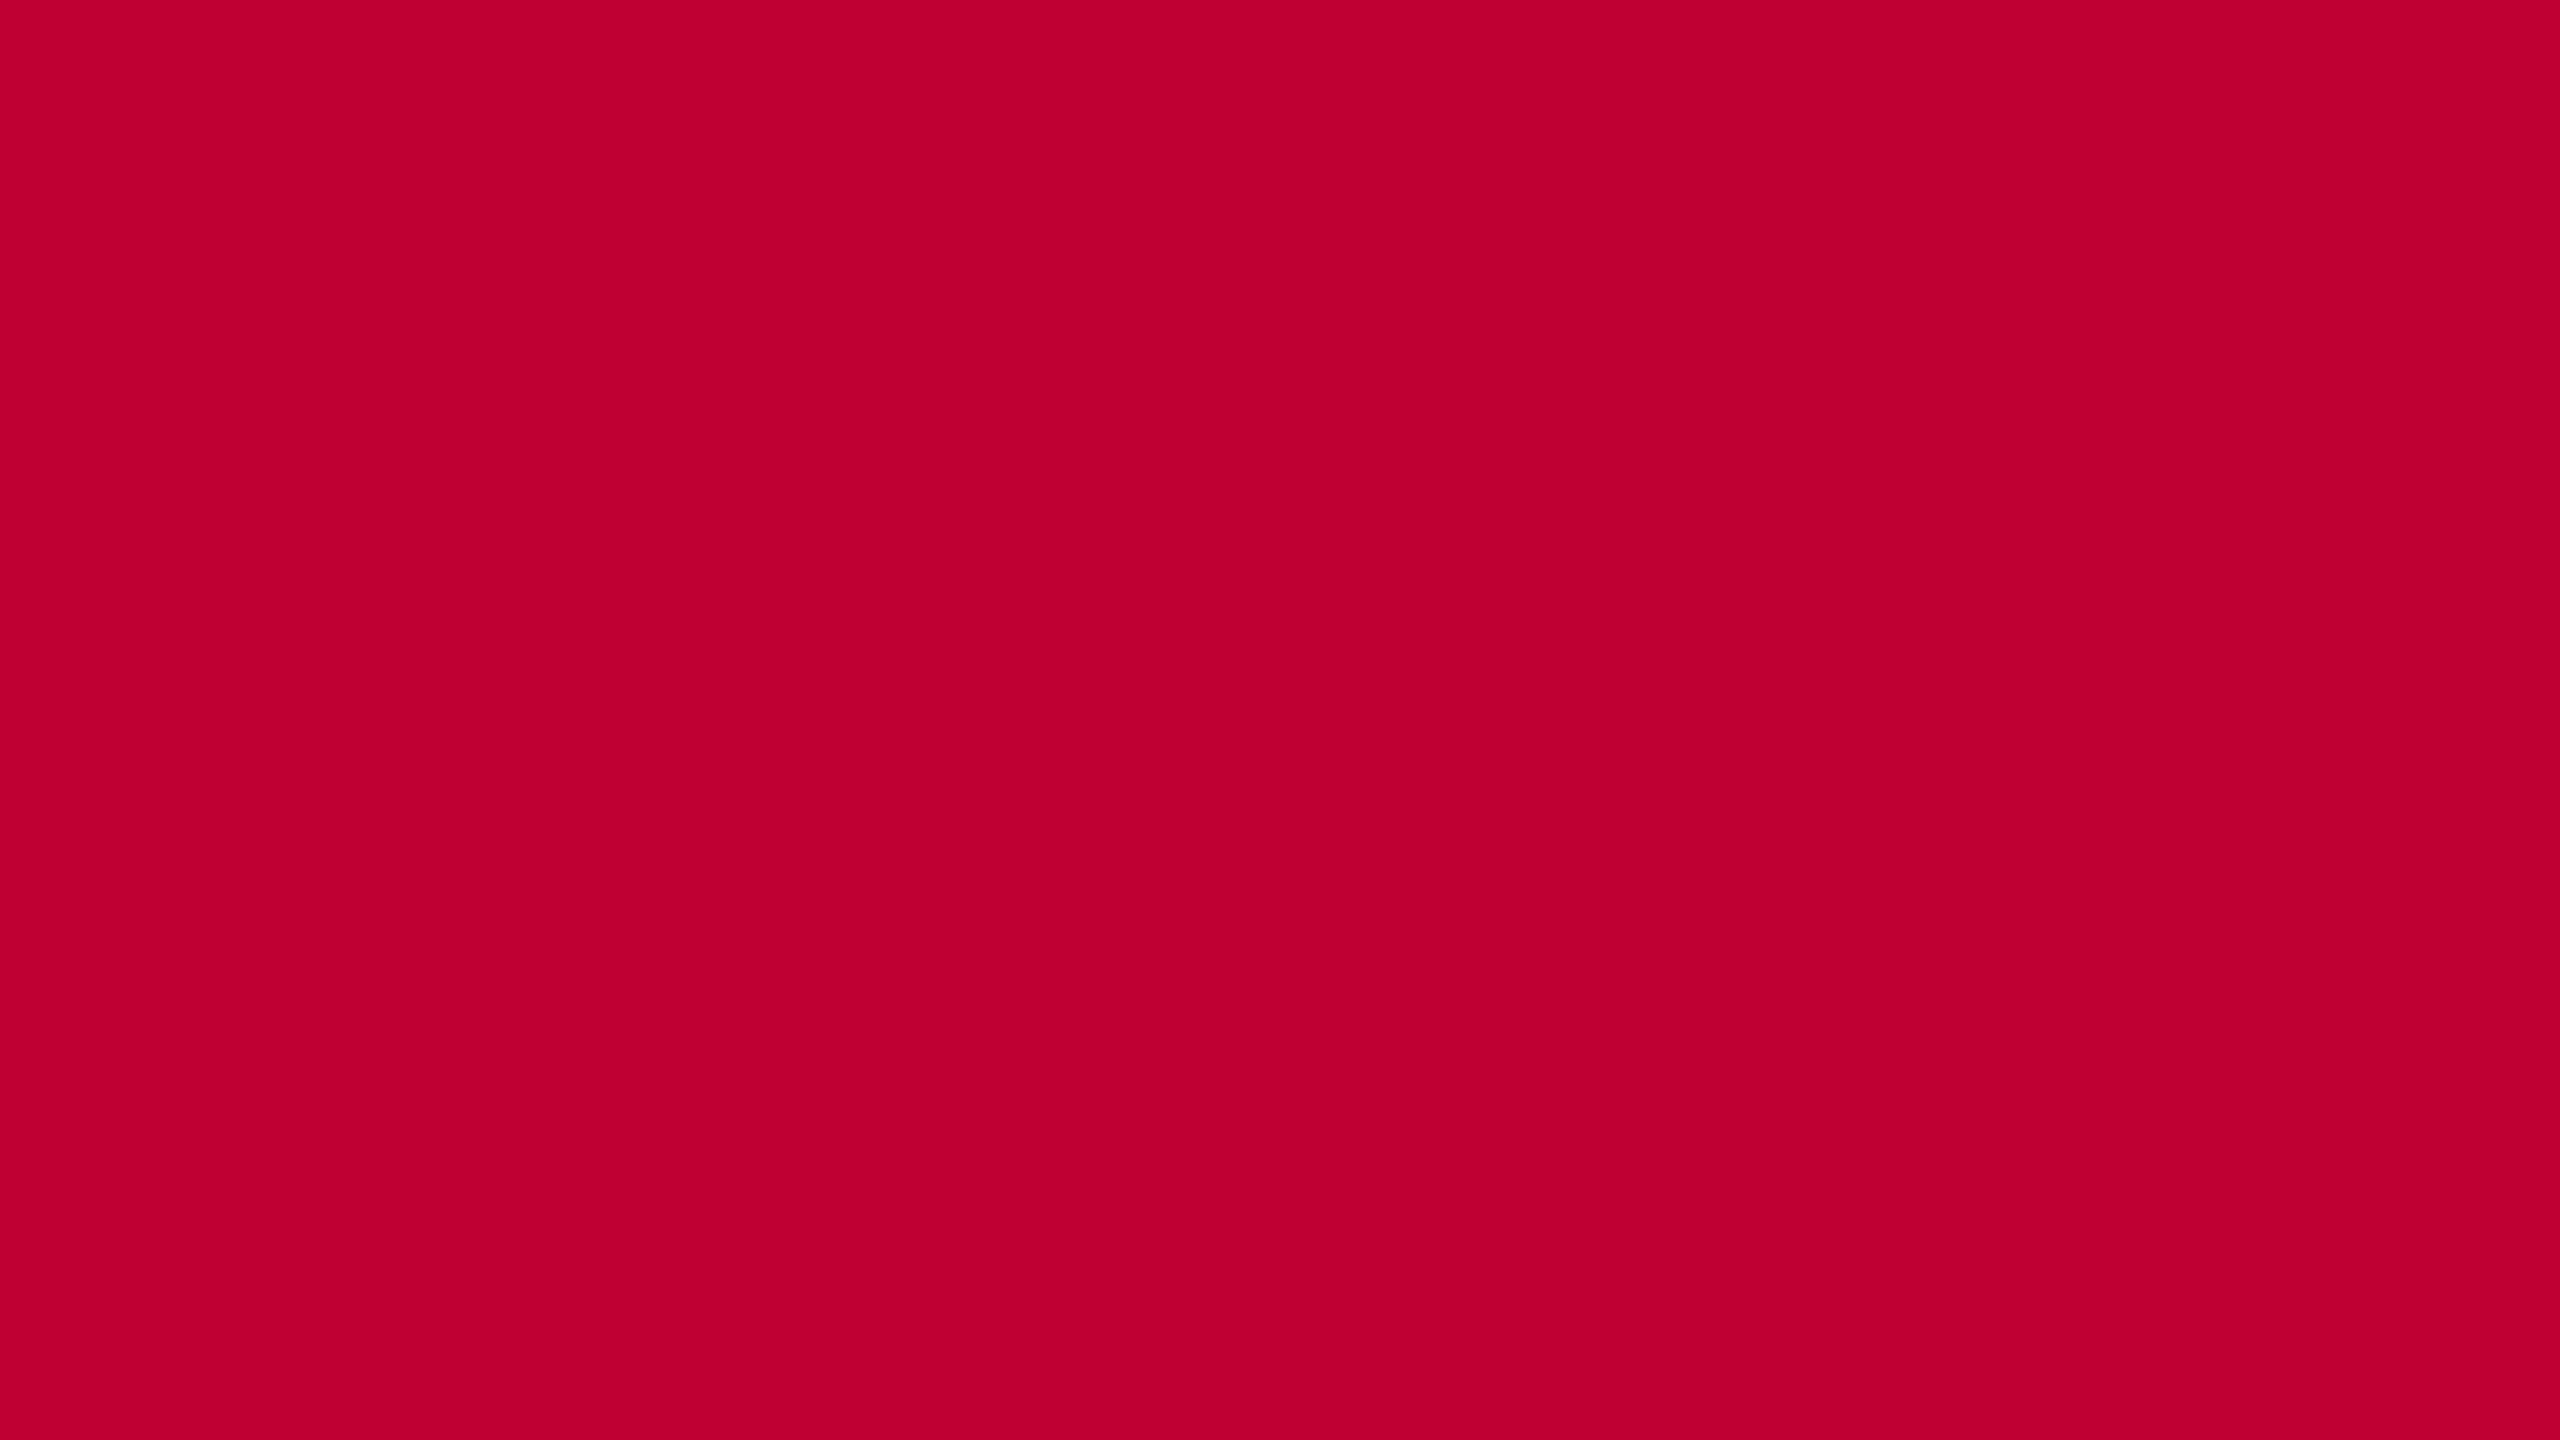 2560x1440 Crimson Glory Solid Color Background